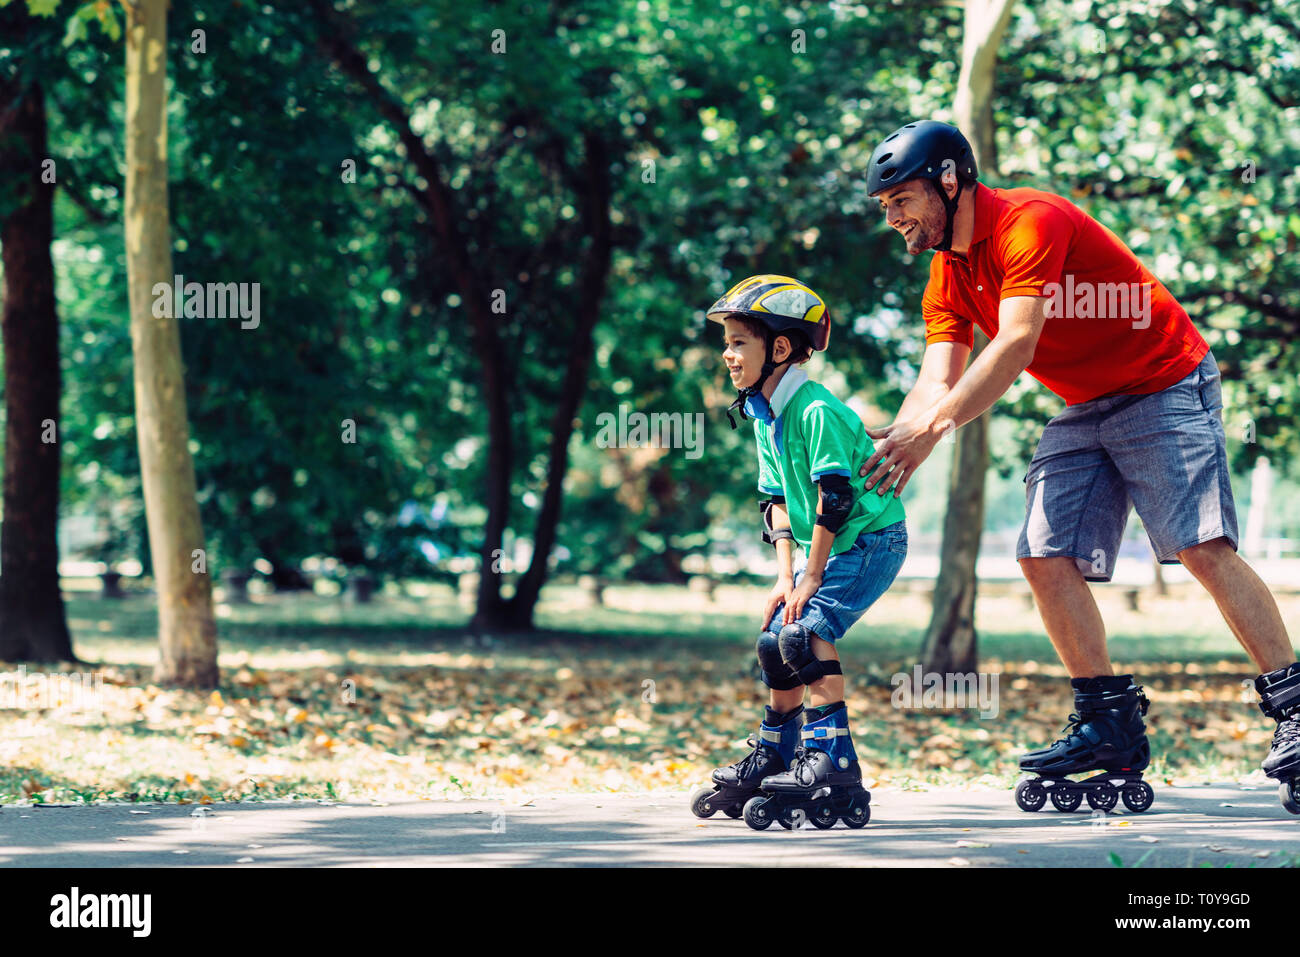 Father and son roller skating in park. Stock Photo